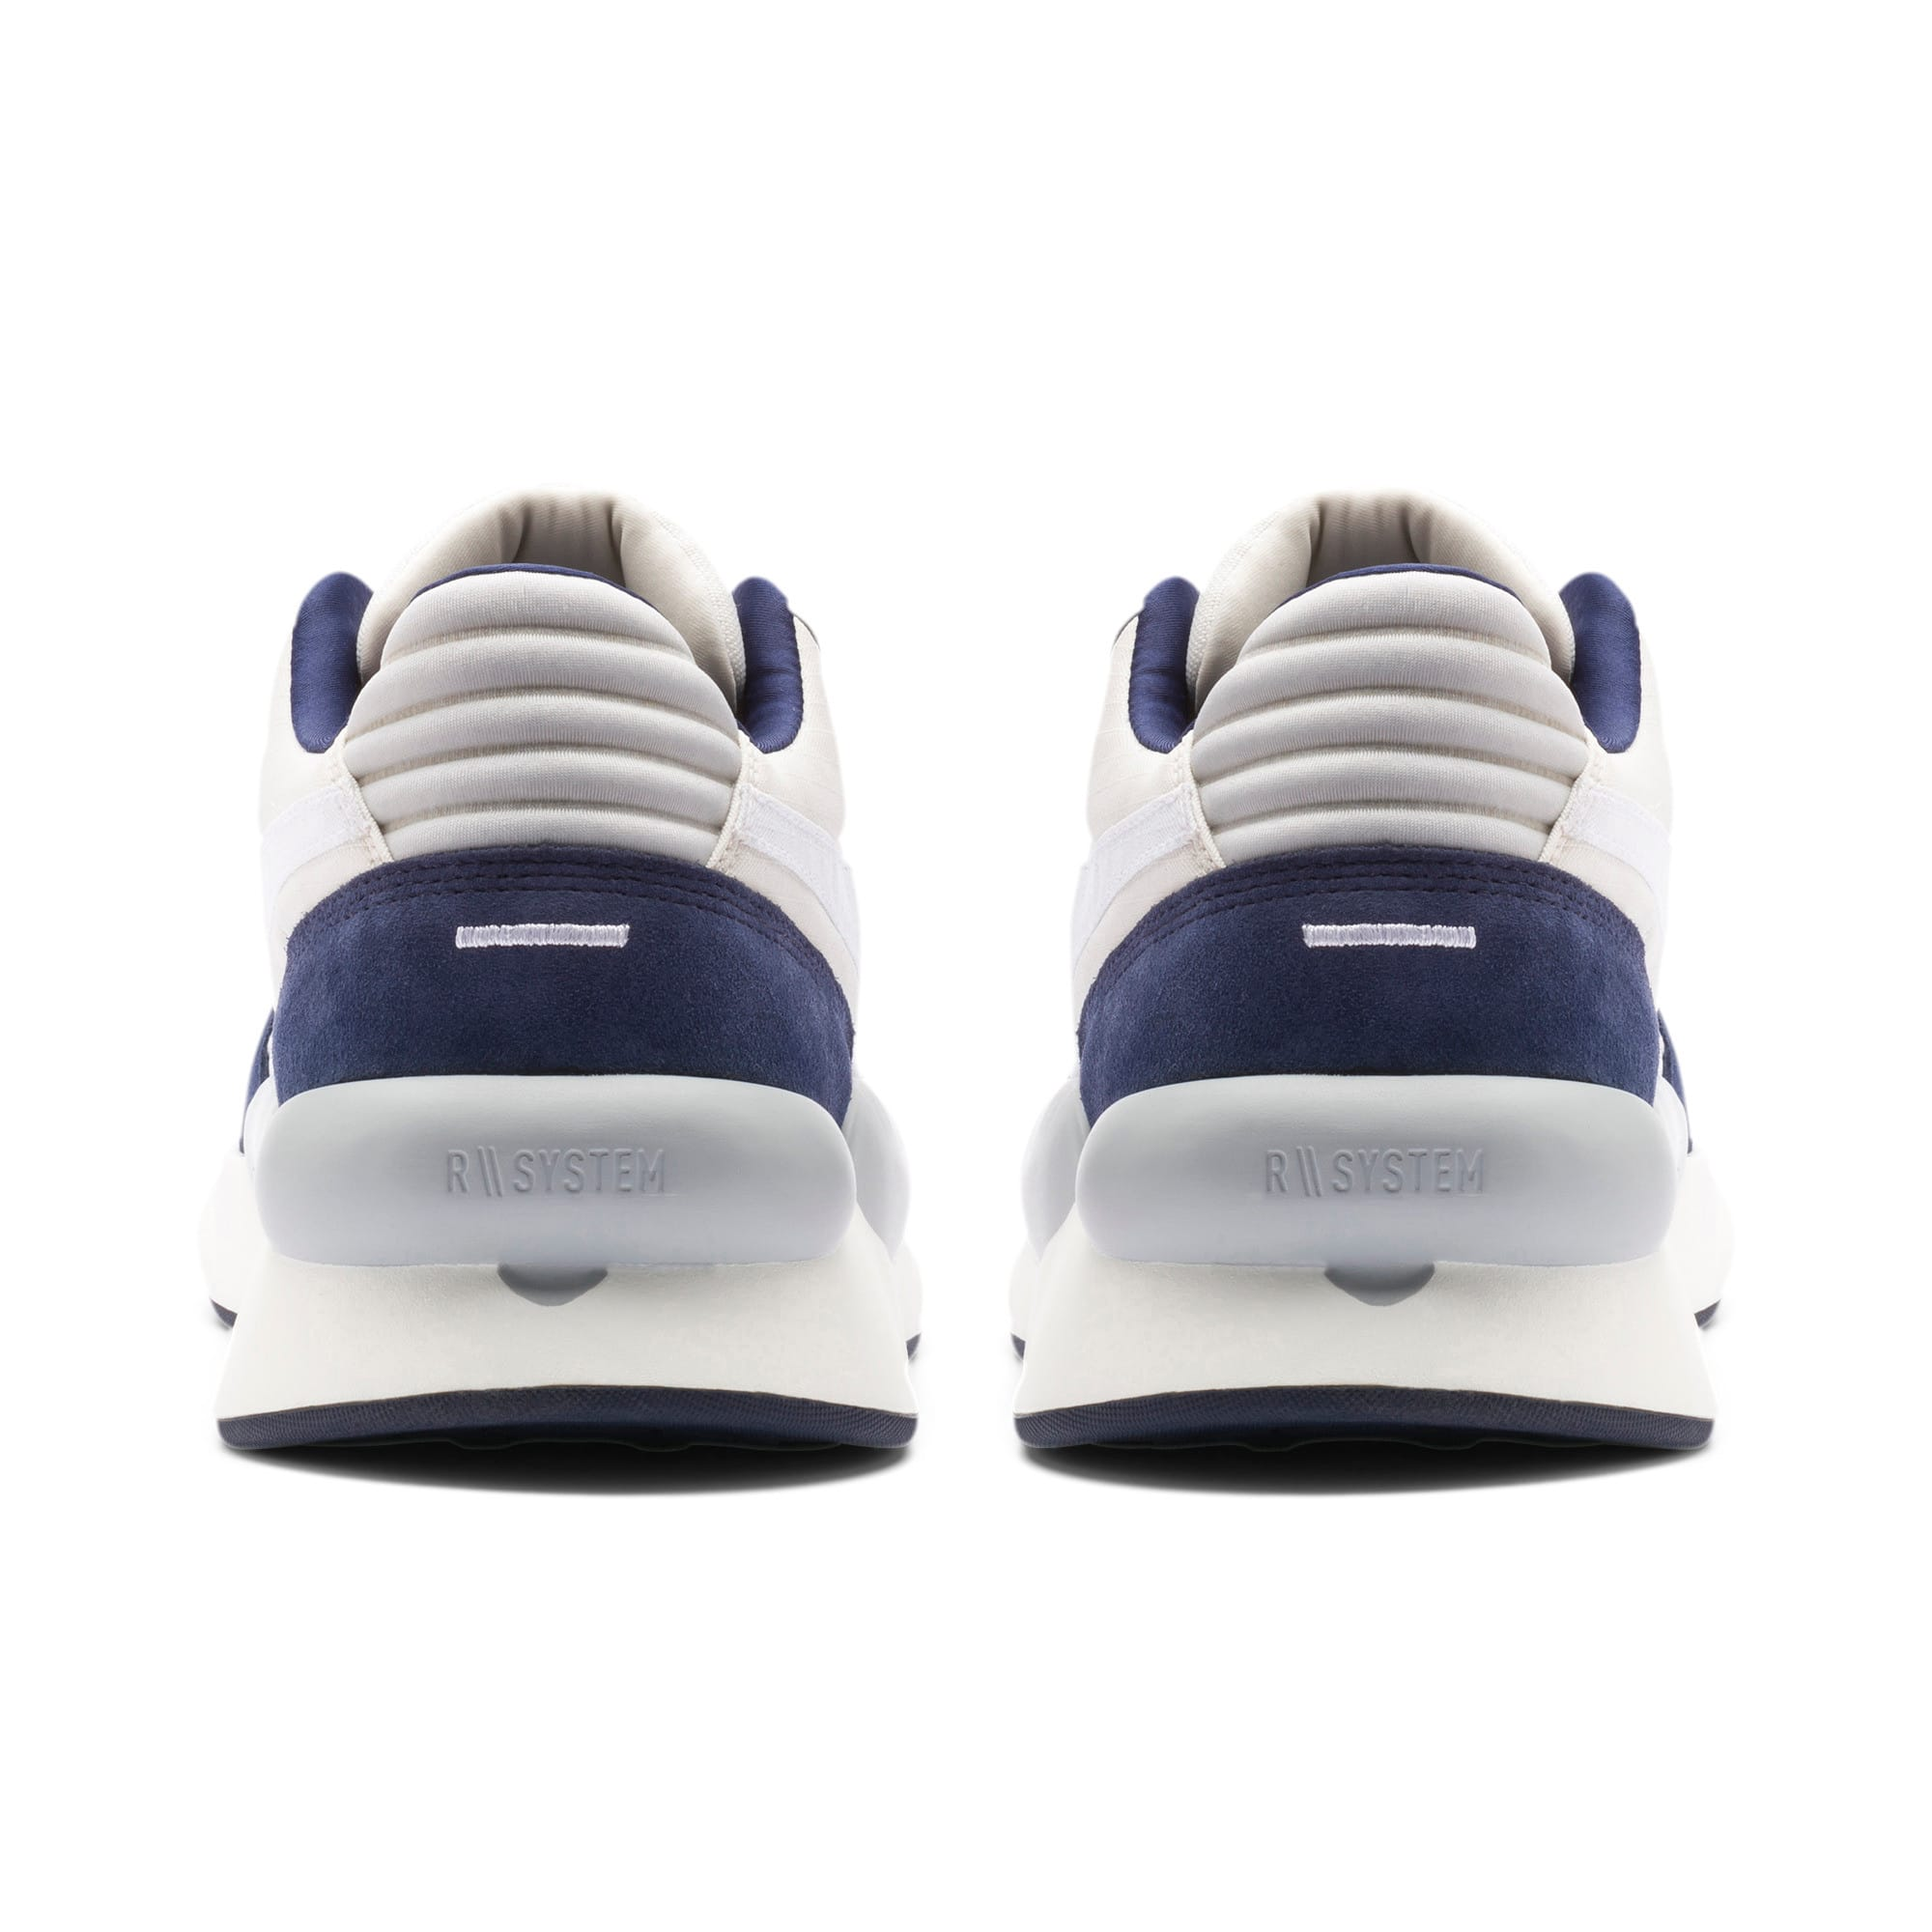 Anteprima 3 di RS 9.8 Space Trainers, Whisper White-Peacoat, medio